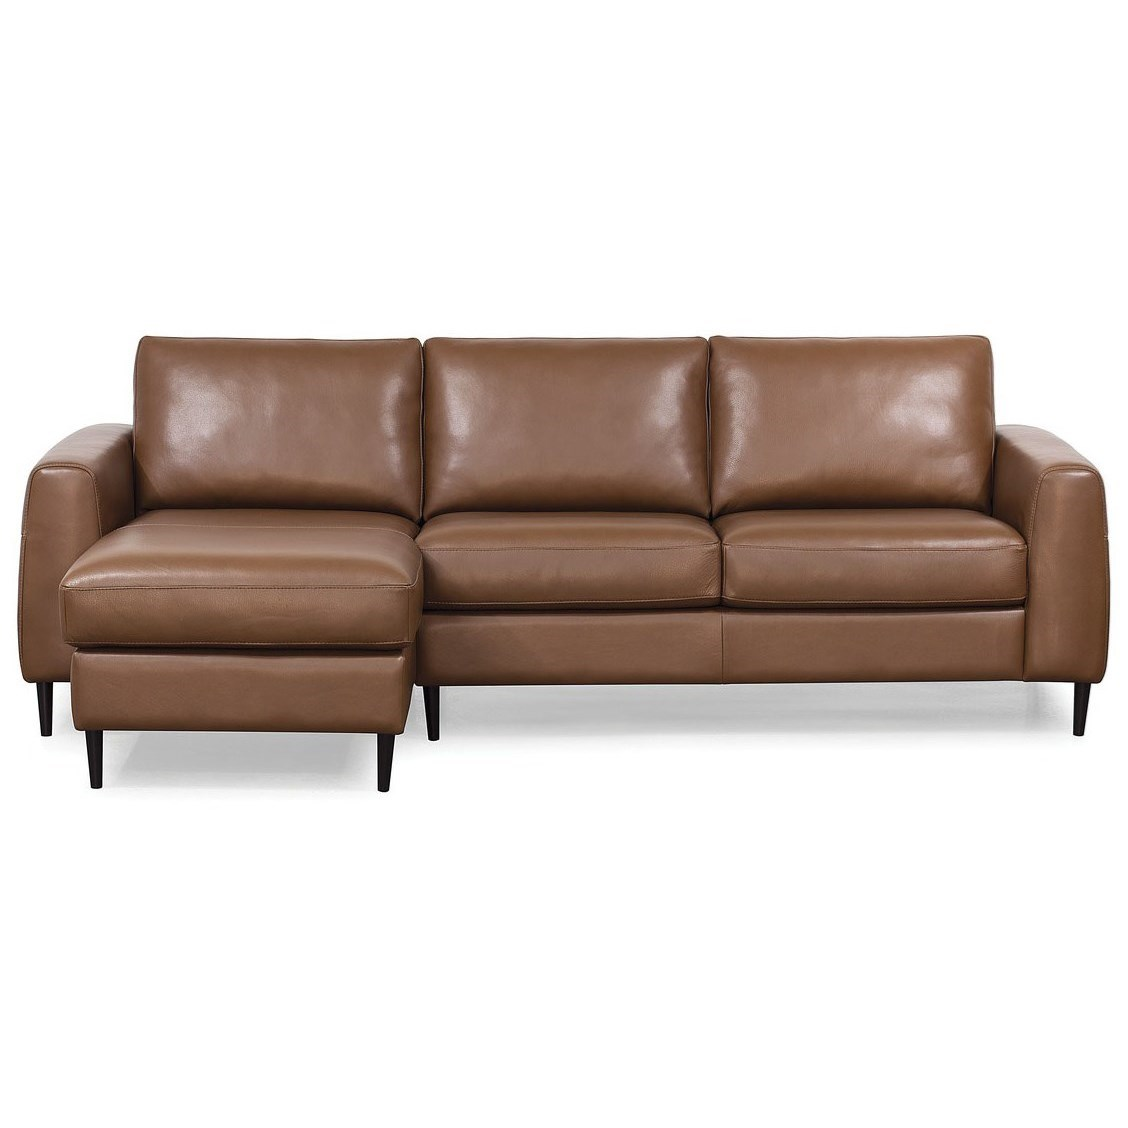 Atticus Sectional Sofa by Palliser at Reid's Furniture